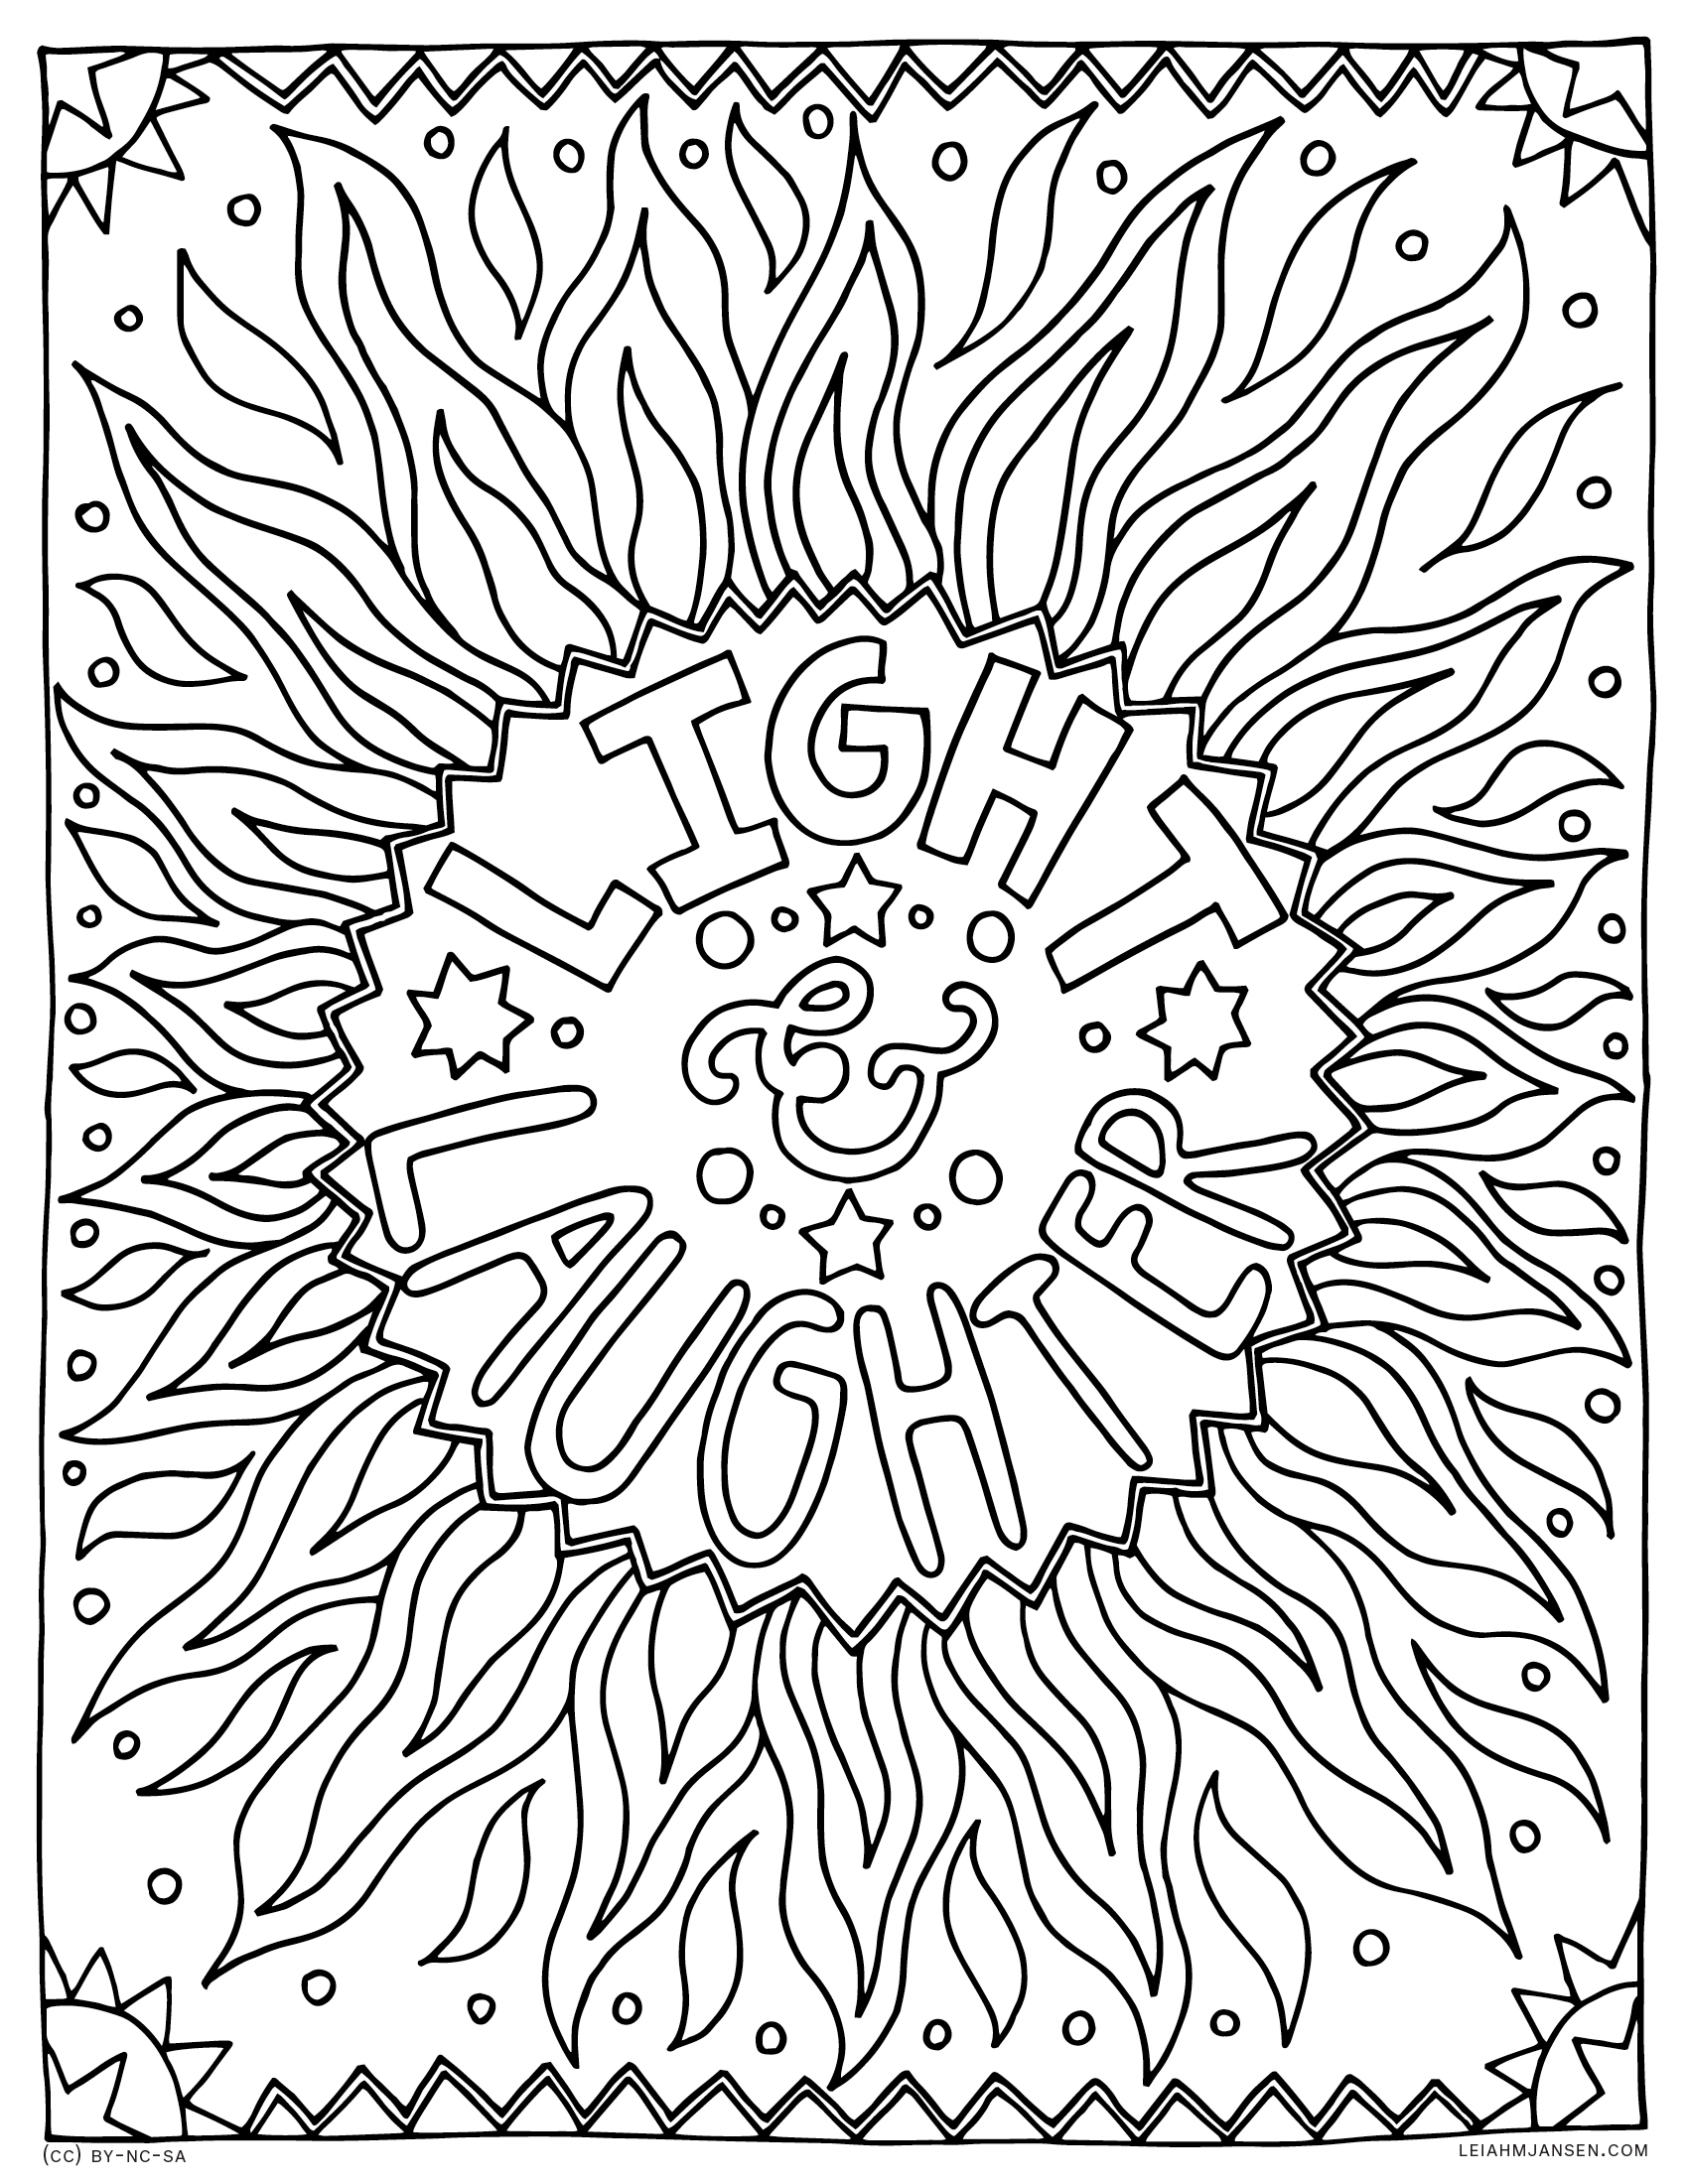 Light & Laughter - Summer Solstice - Free Printable Coloring Page for Adults and Kids, by leiahmjansen.com